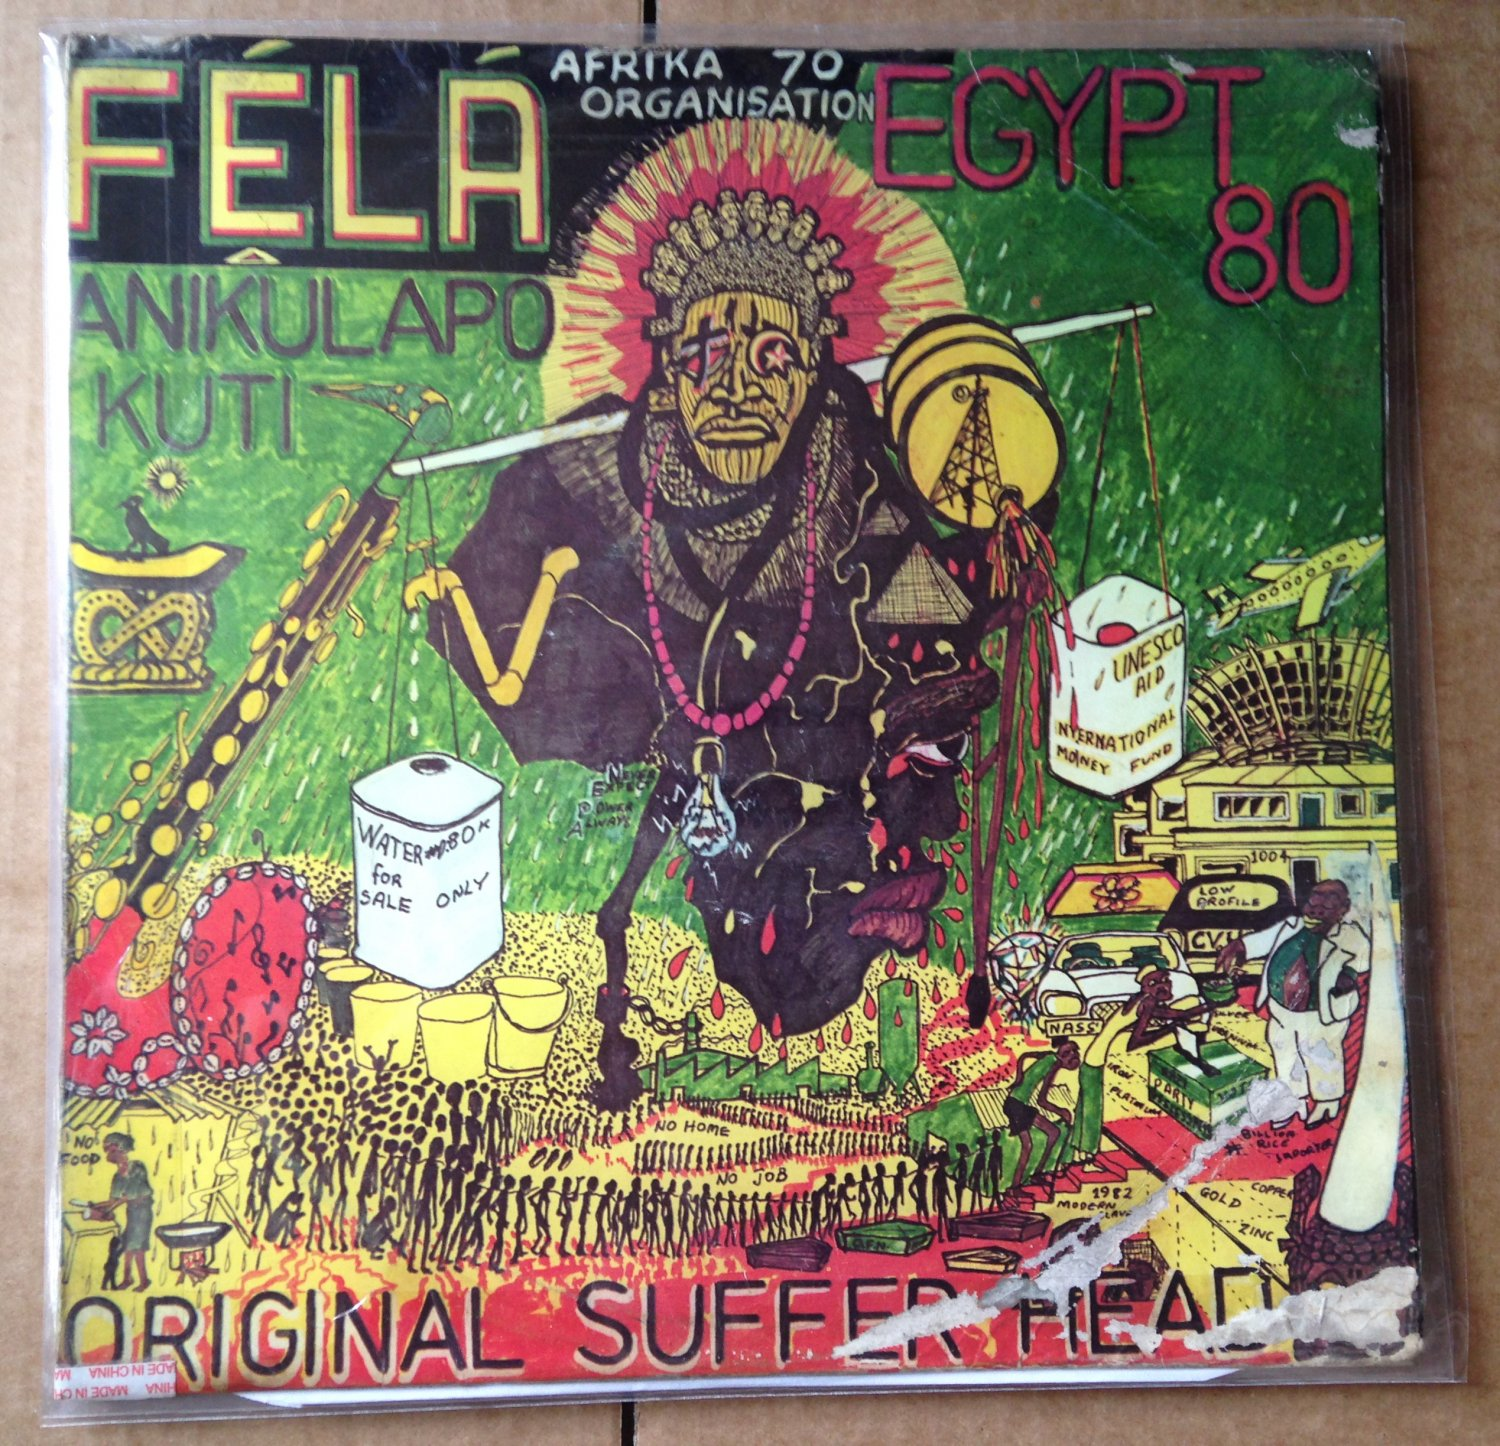 FELA LP original suffer head AFRO BEAT mp3 LISTEN